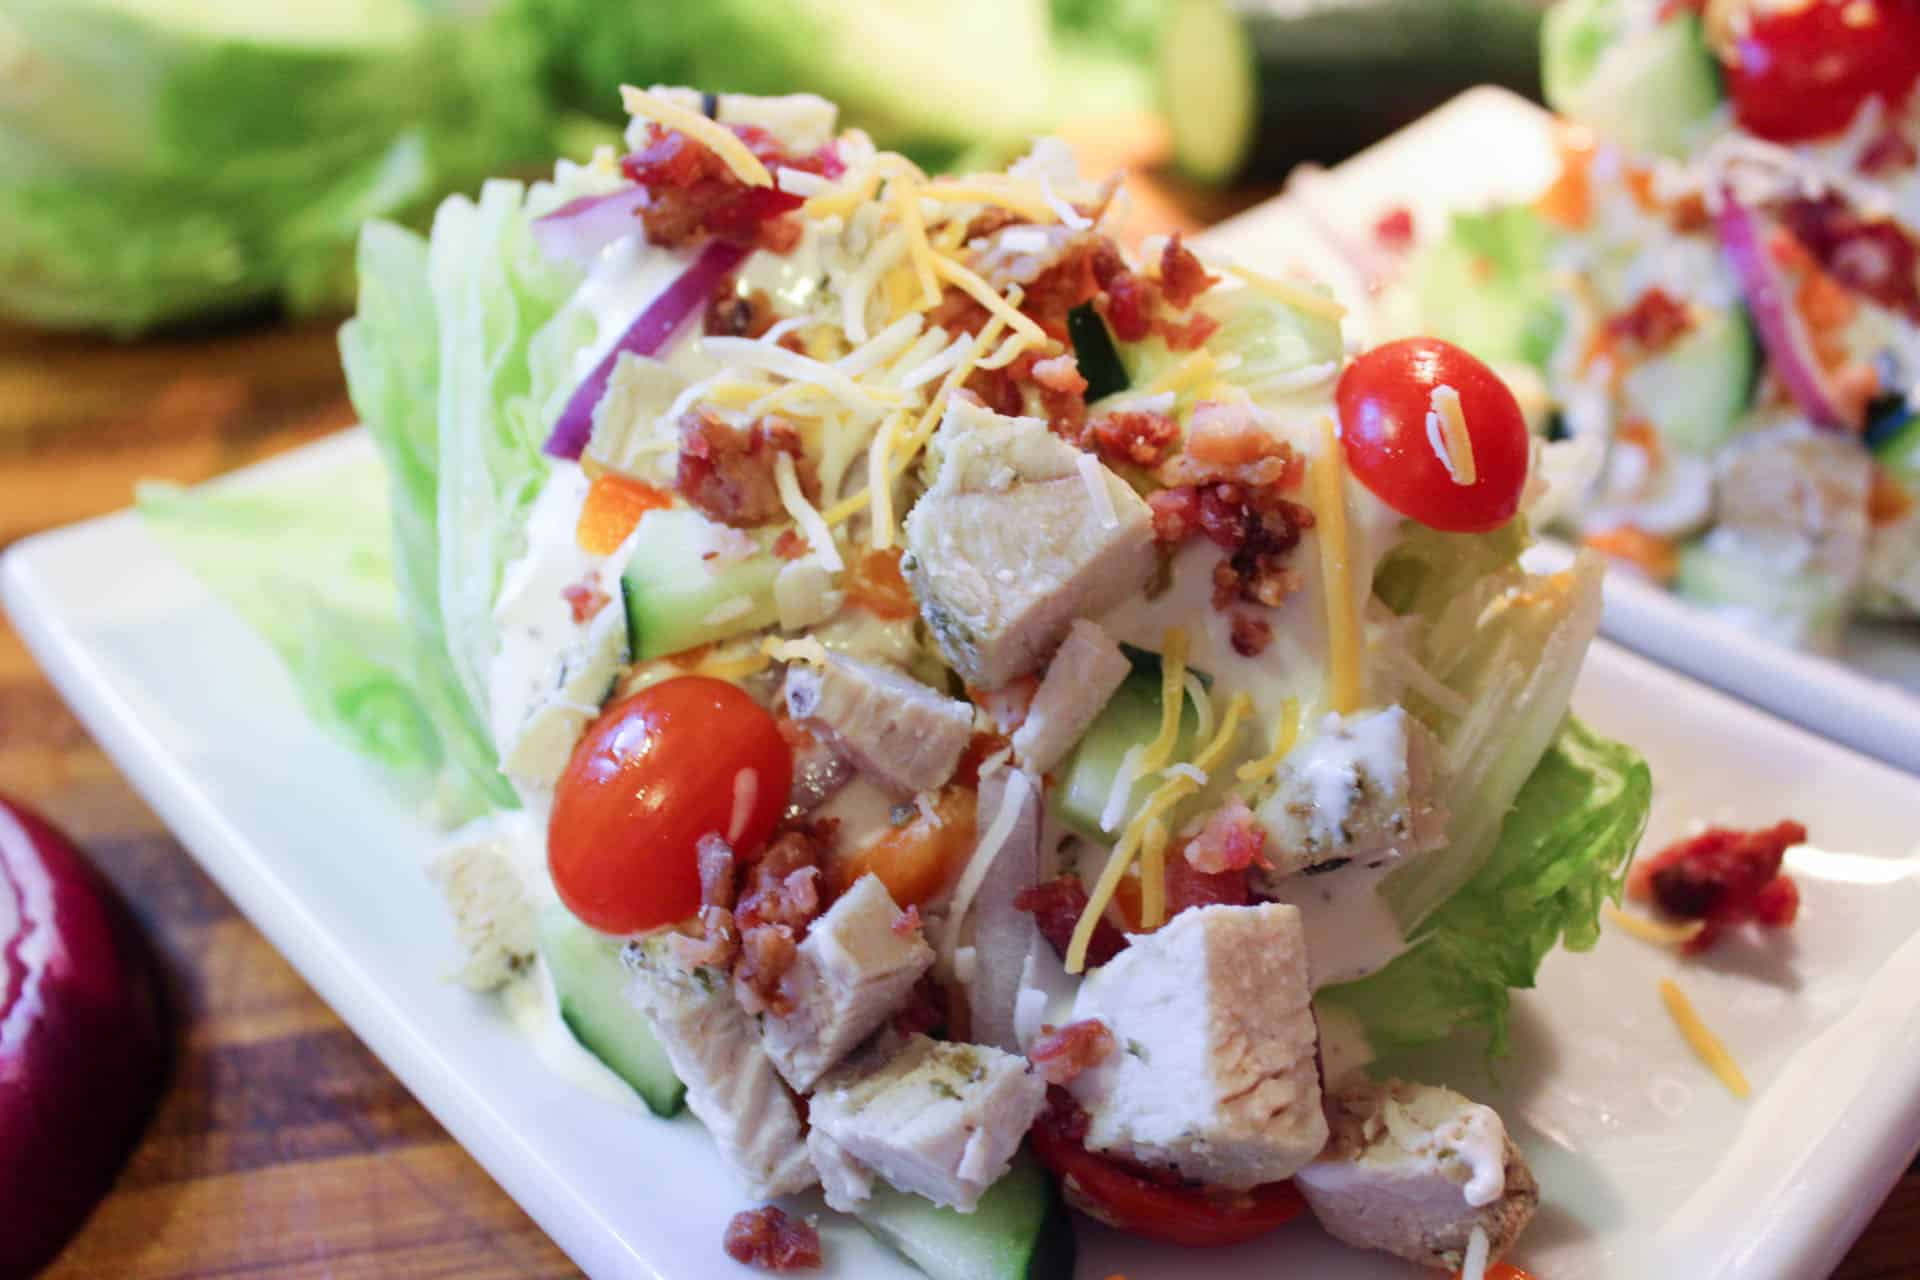 Basic Wedge Salad (THM-S, Low Carb)